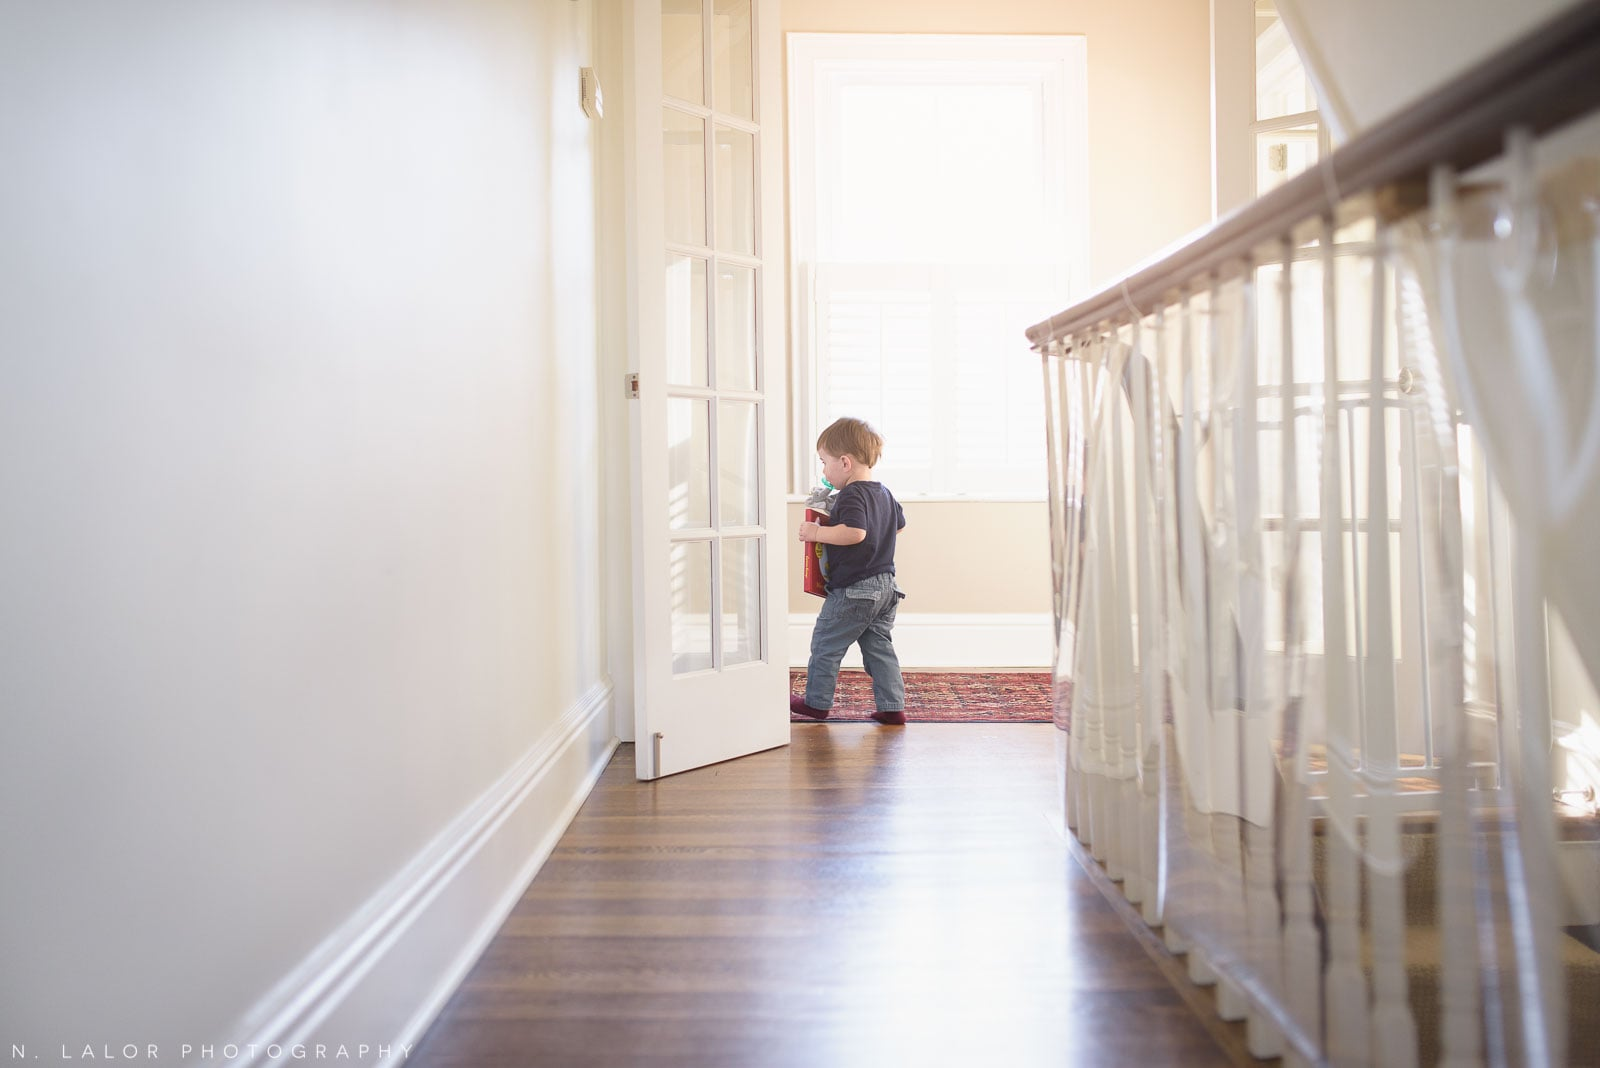 Toddler boy running off with his favorite book. In-home lifestyle photo by N. Lalor Photography. Norwalk, Connecticut.